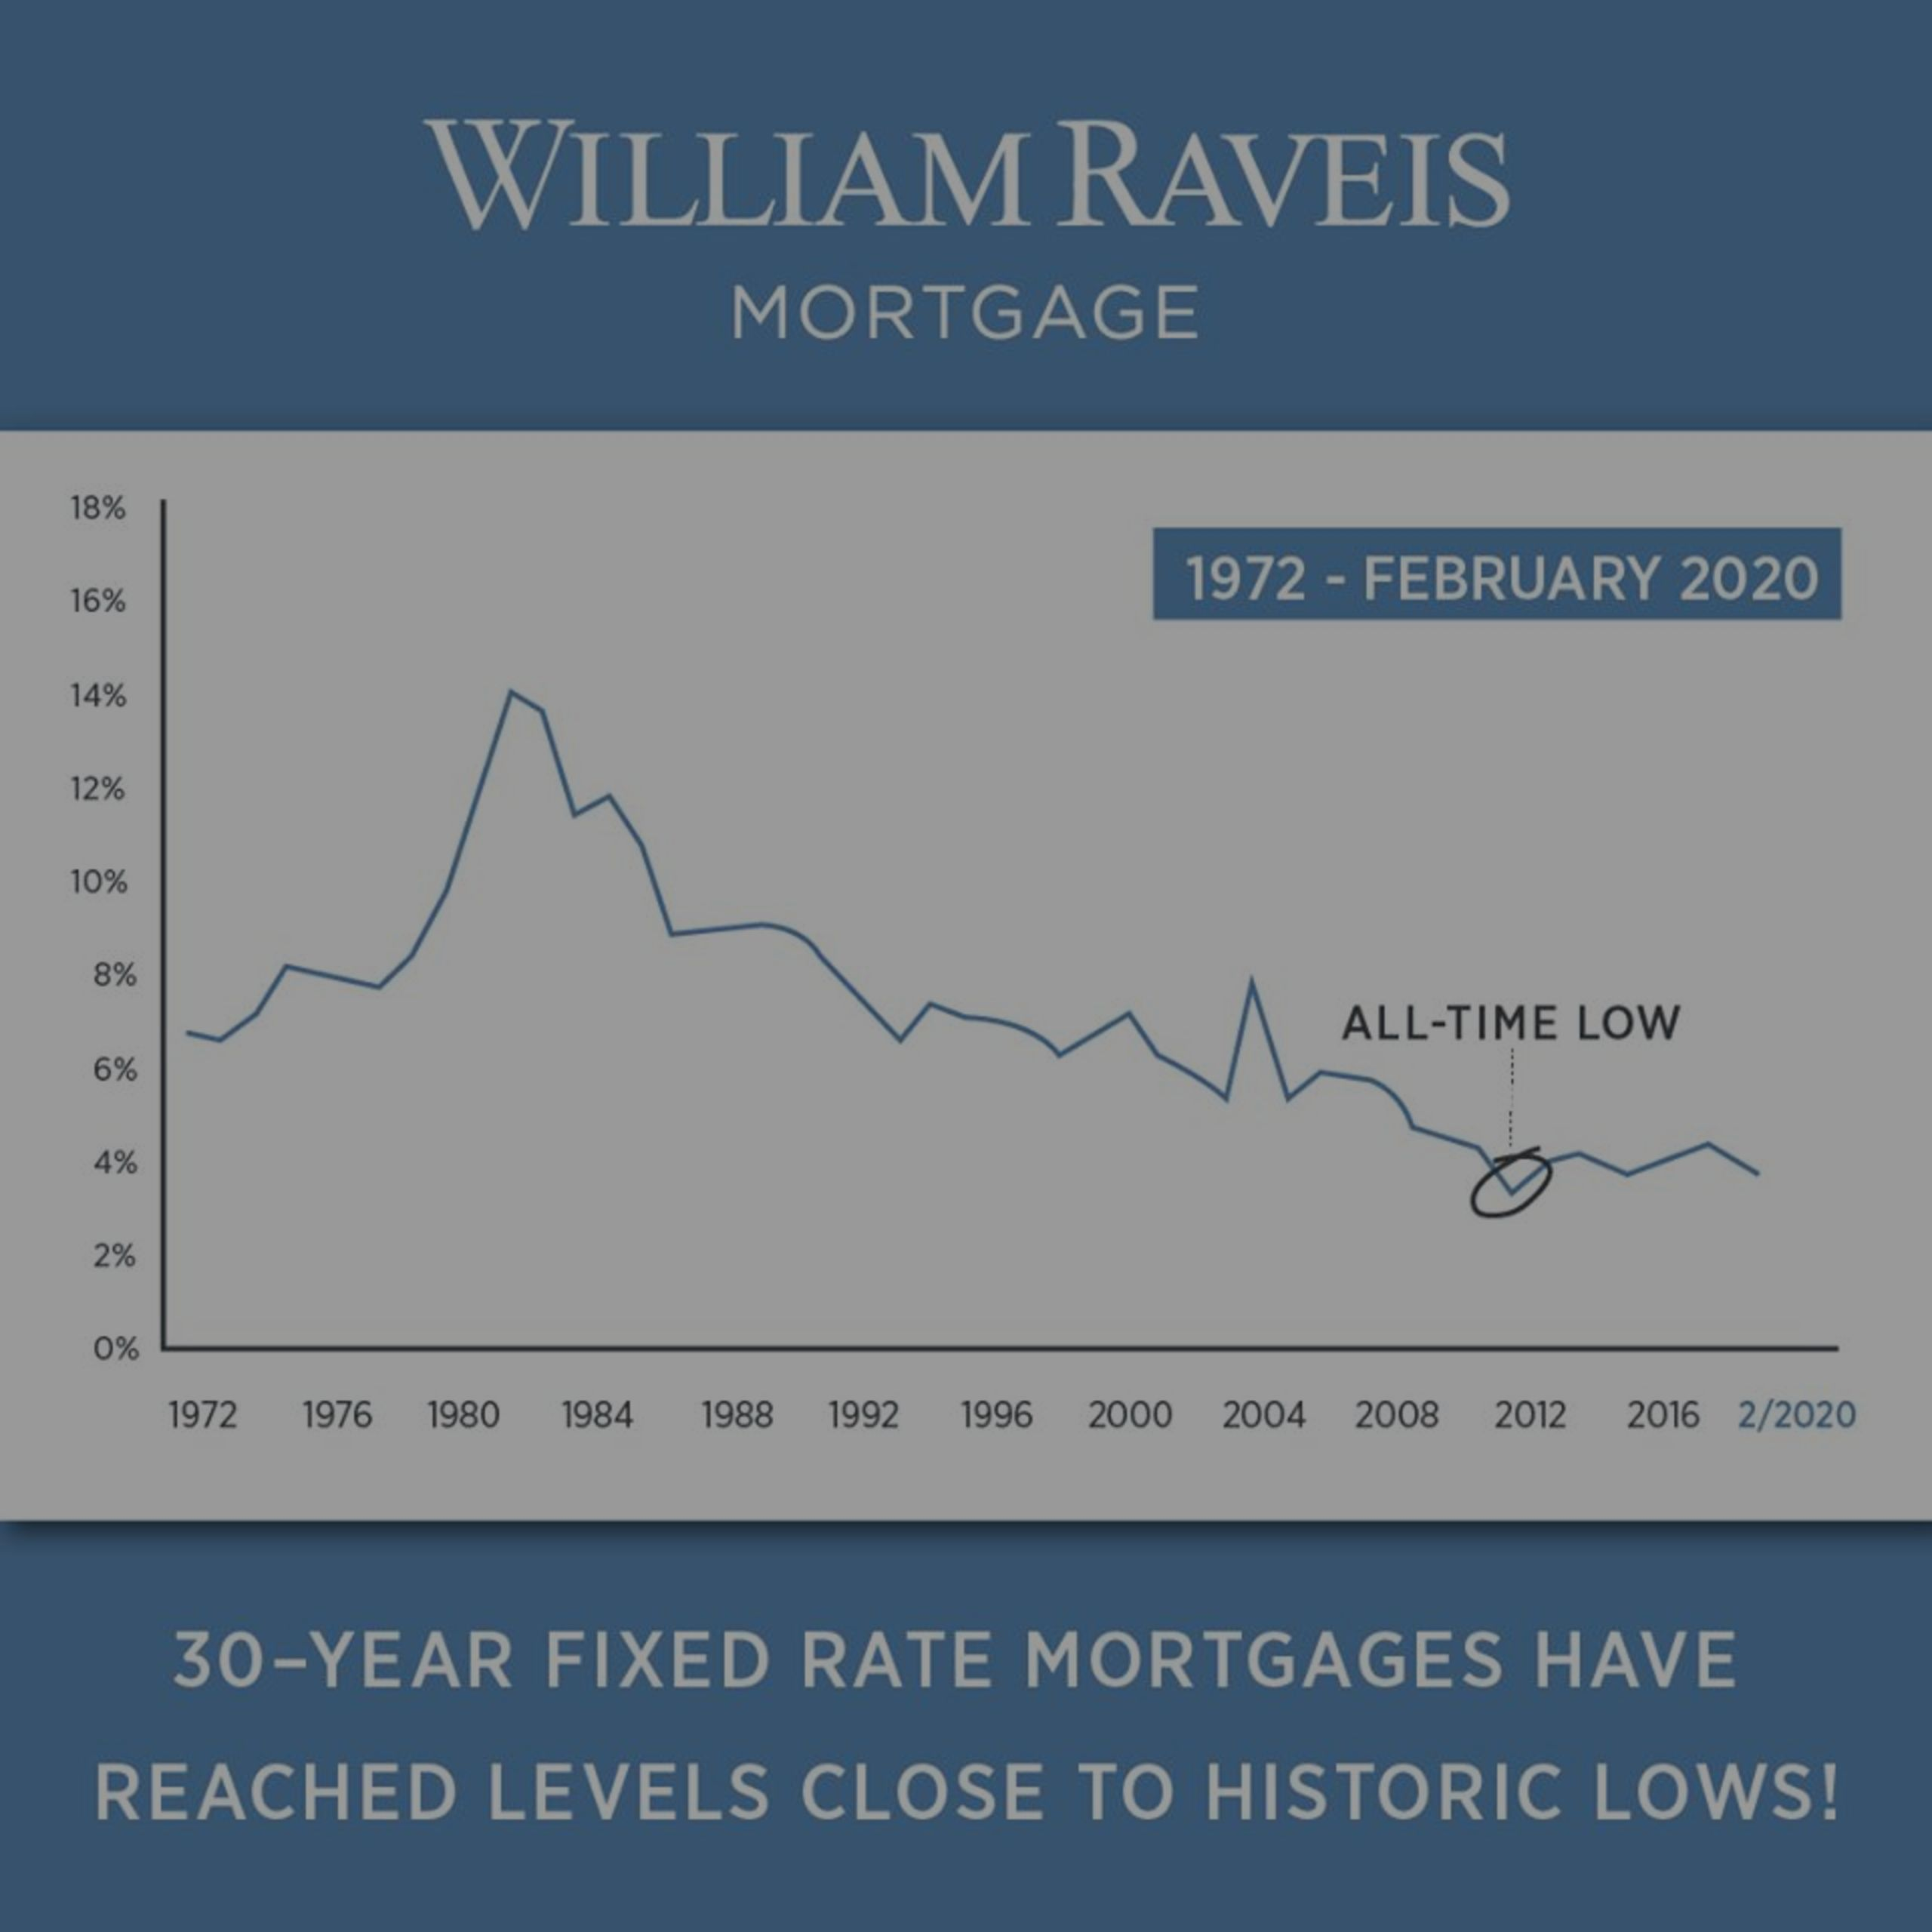 Refinancing efforts in the first quarter of 2020!